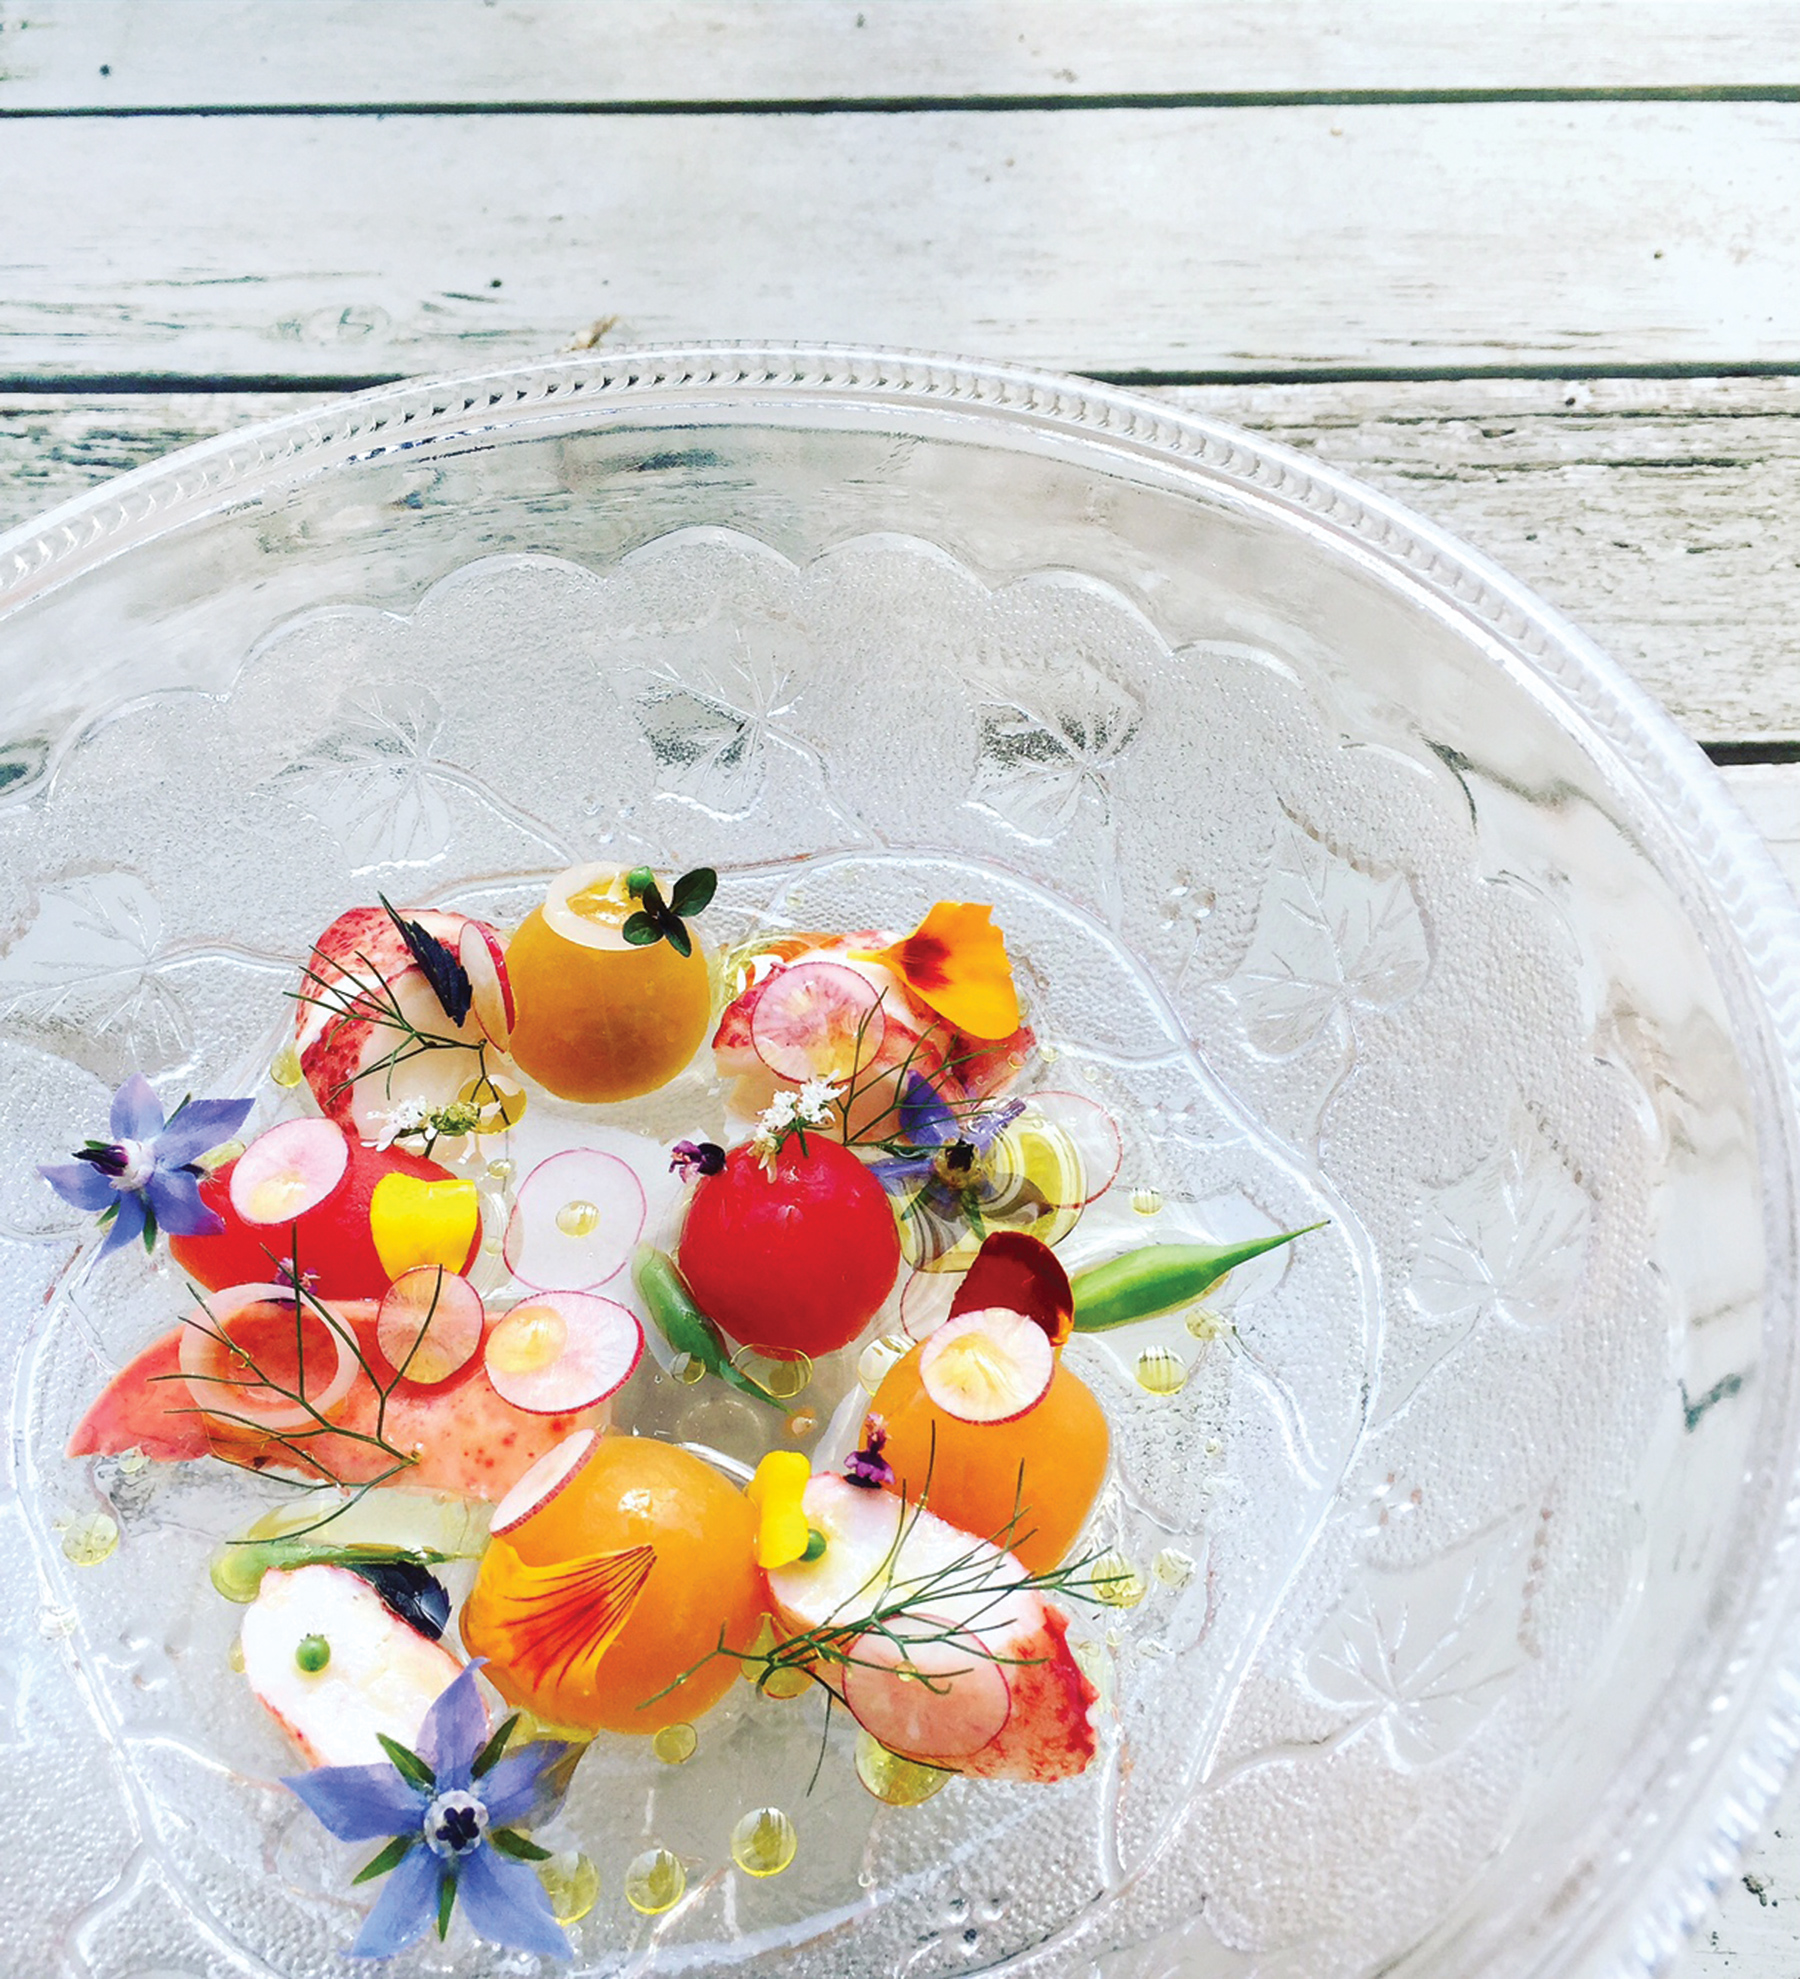 Edible flowers from the garden on the estate enhance innovative dishes created in the kitchen